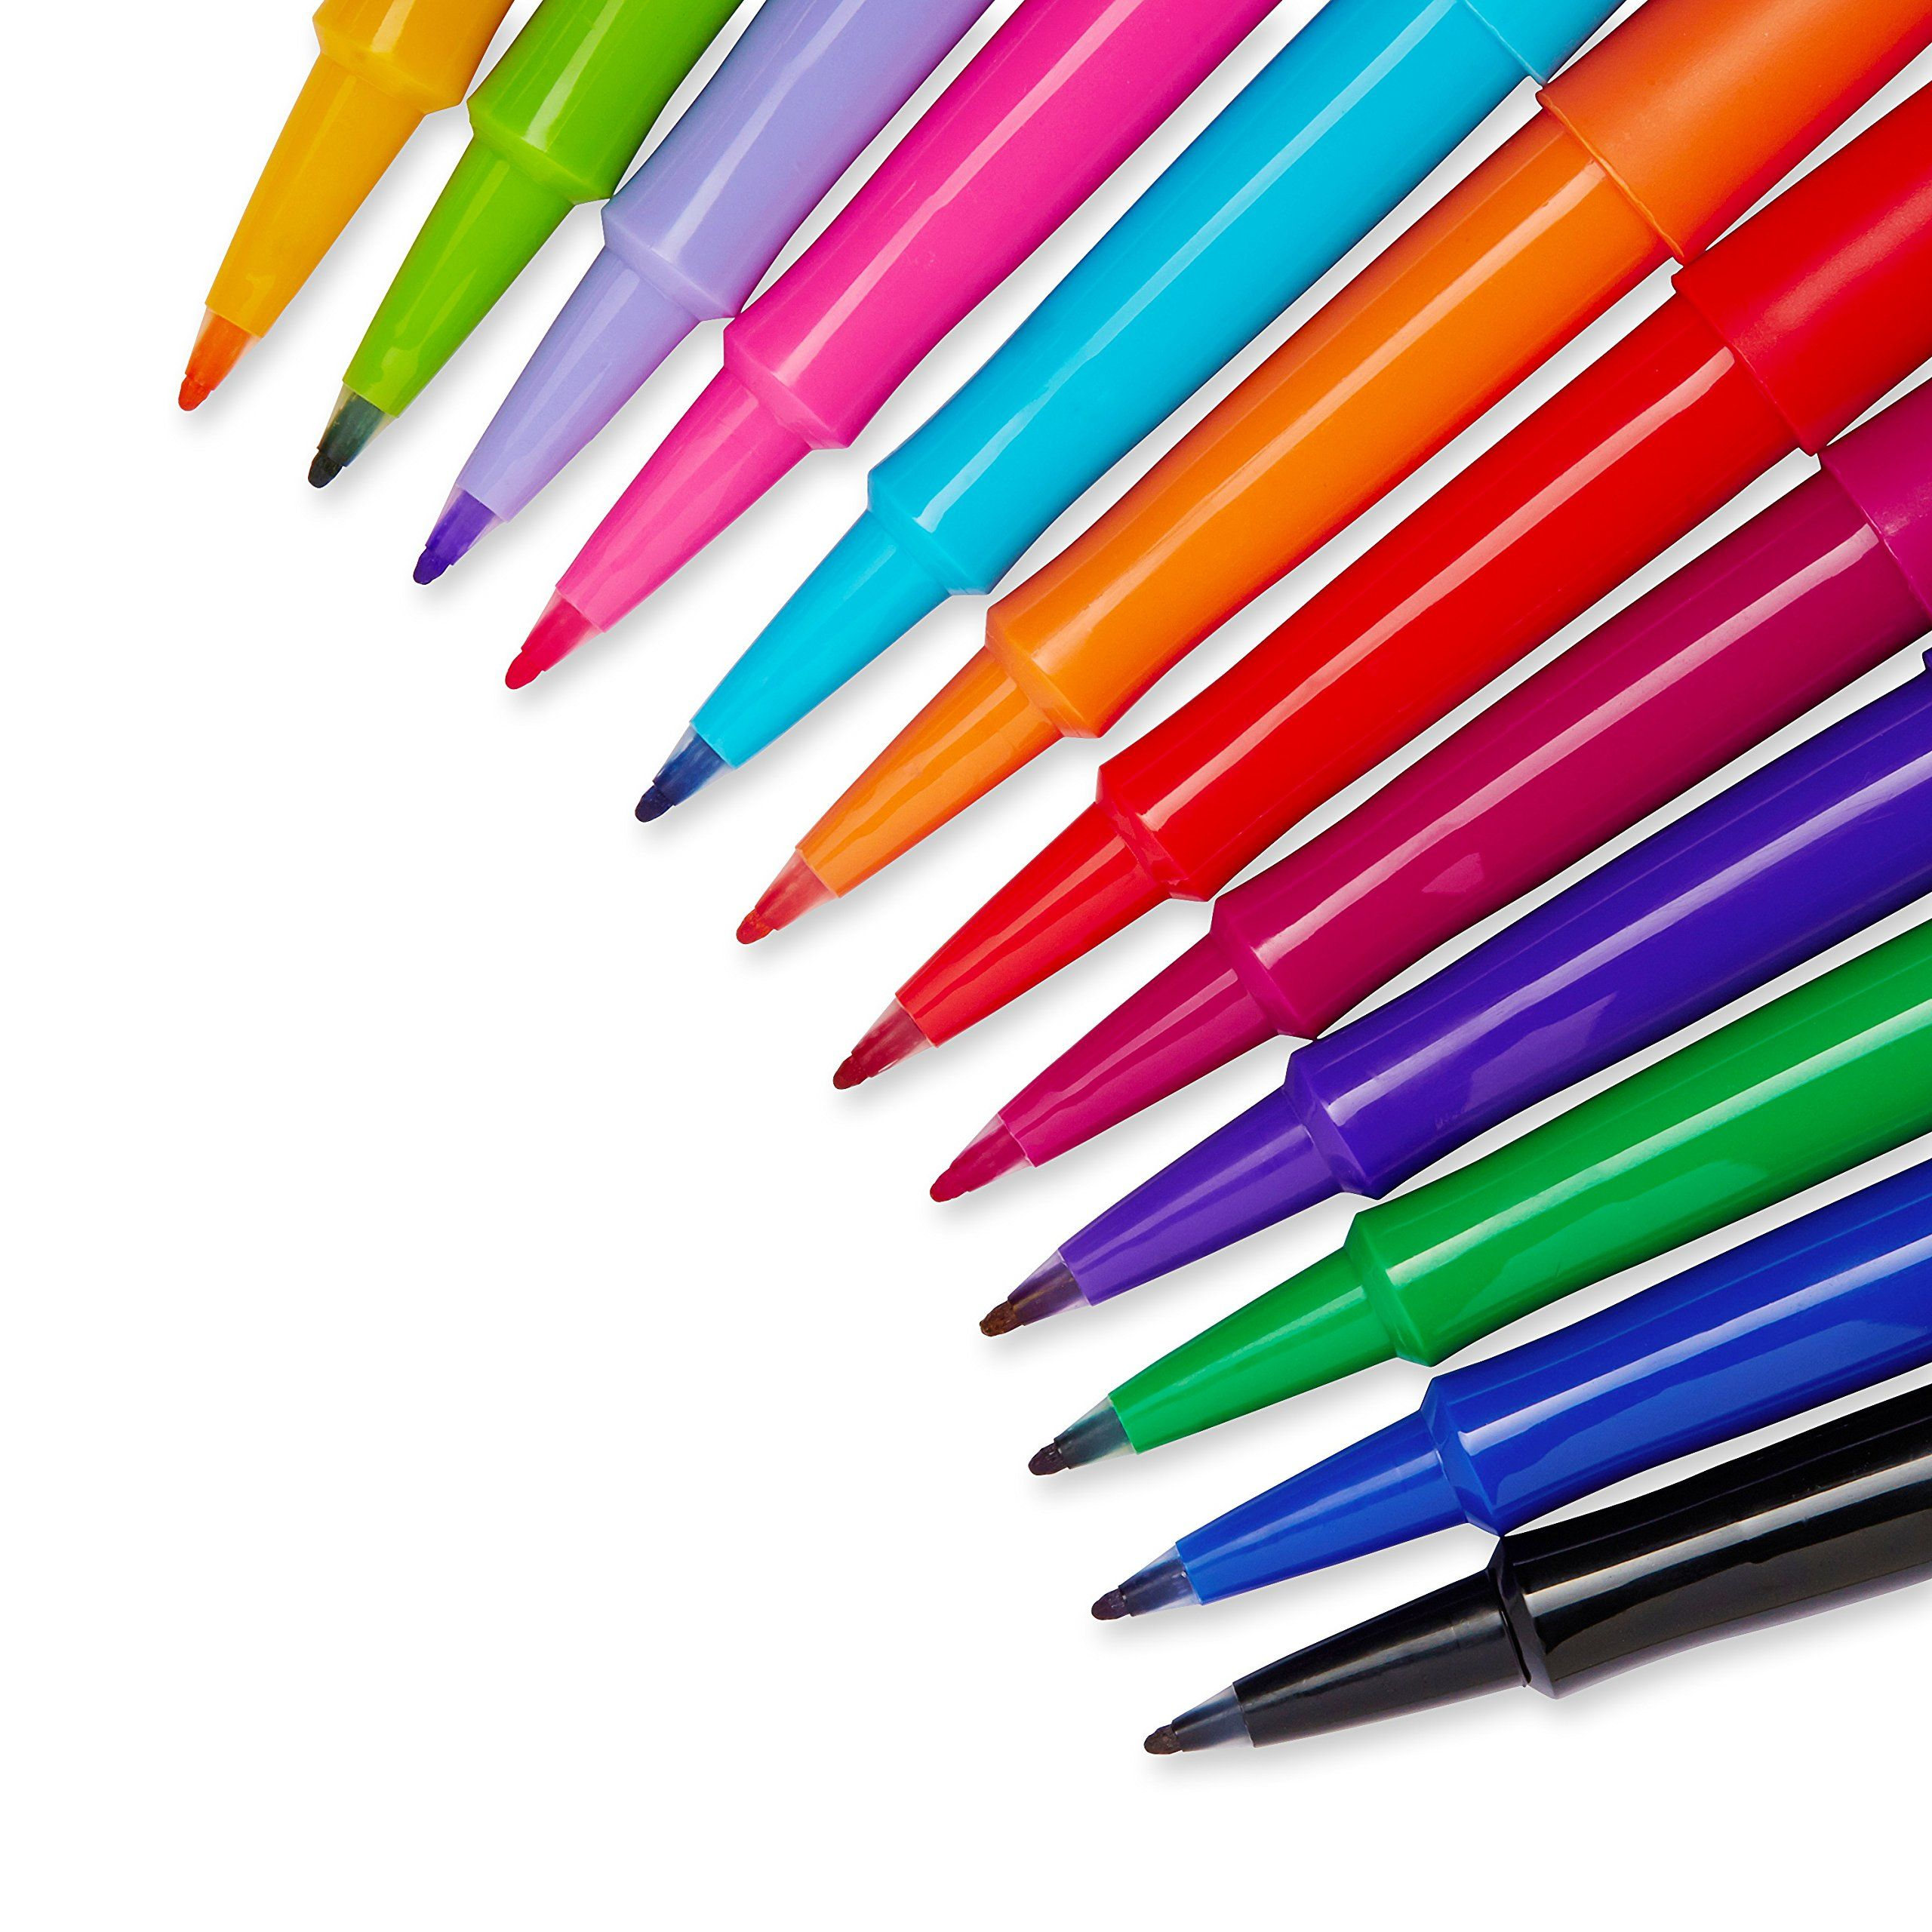 Amazon.com : Paper Mate Flair Porous-Point Felt Tip Pen, Medium Tip, 12-Pack, Fashion Colors (74423) : Papermate Flair : Office Products